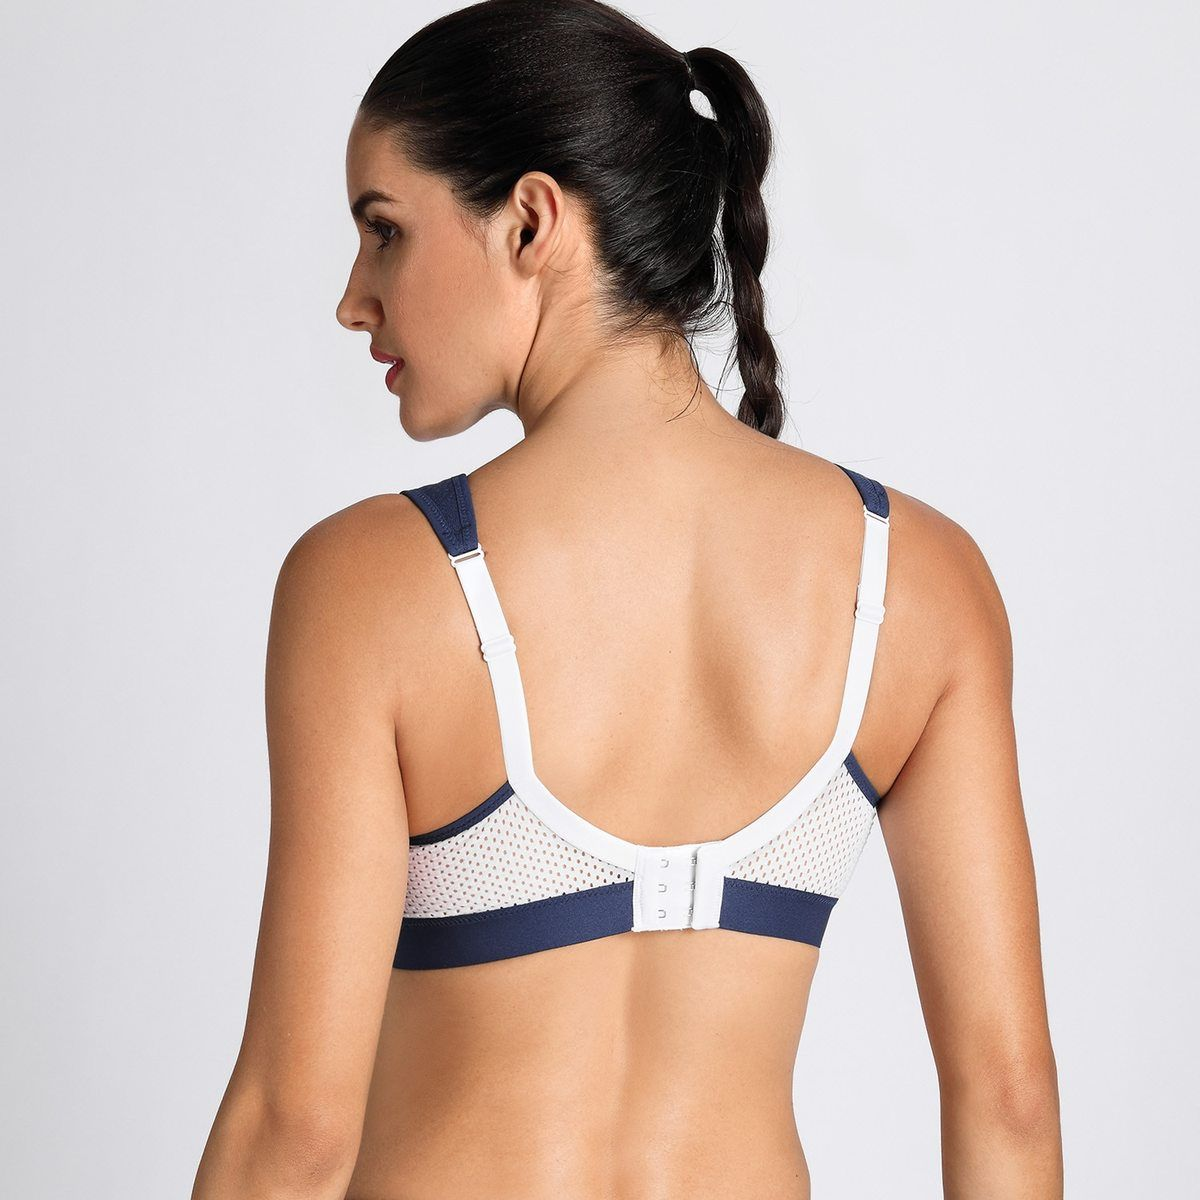 Photo of Women's High Impact Support Bounce Control Workout Plus Size Sports Bra